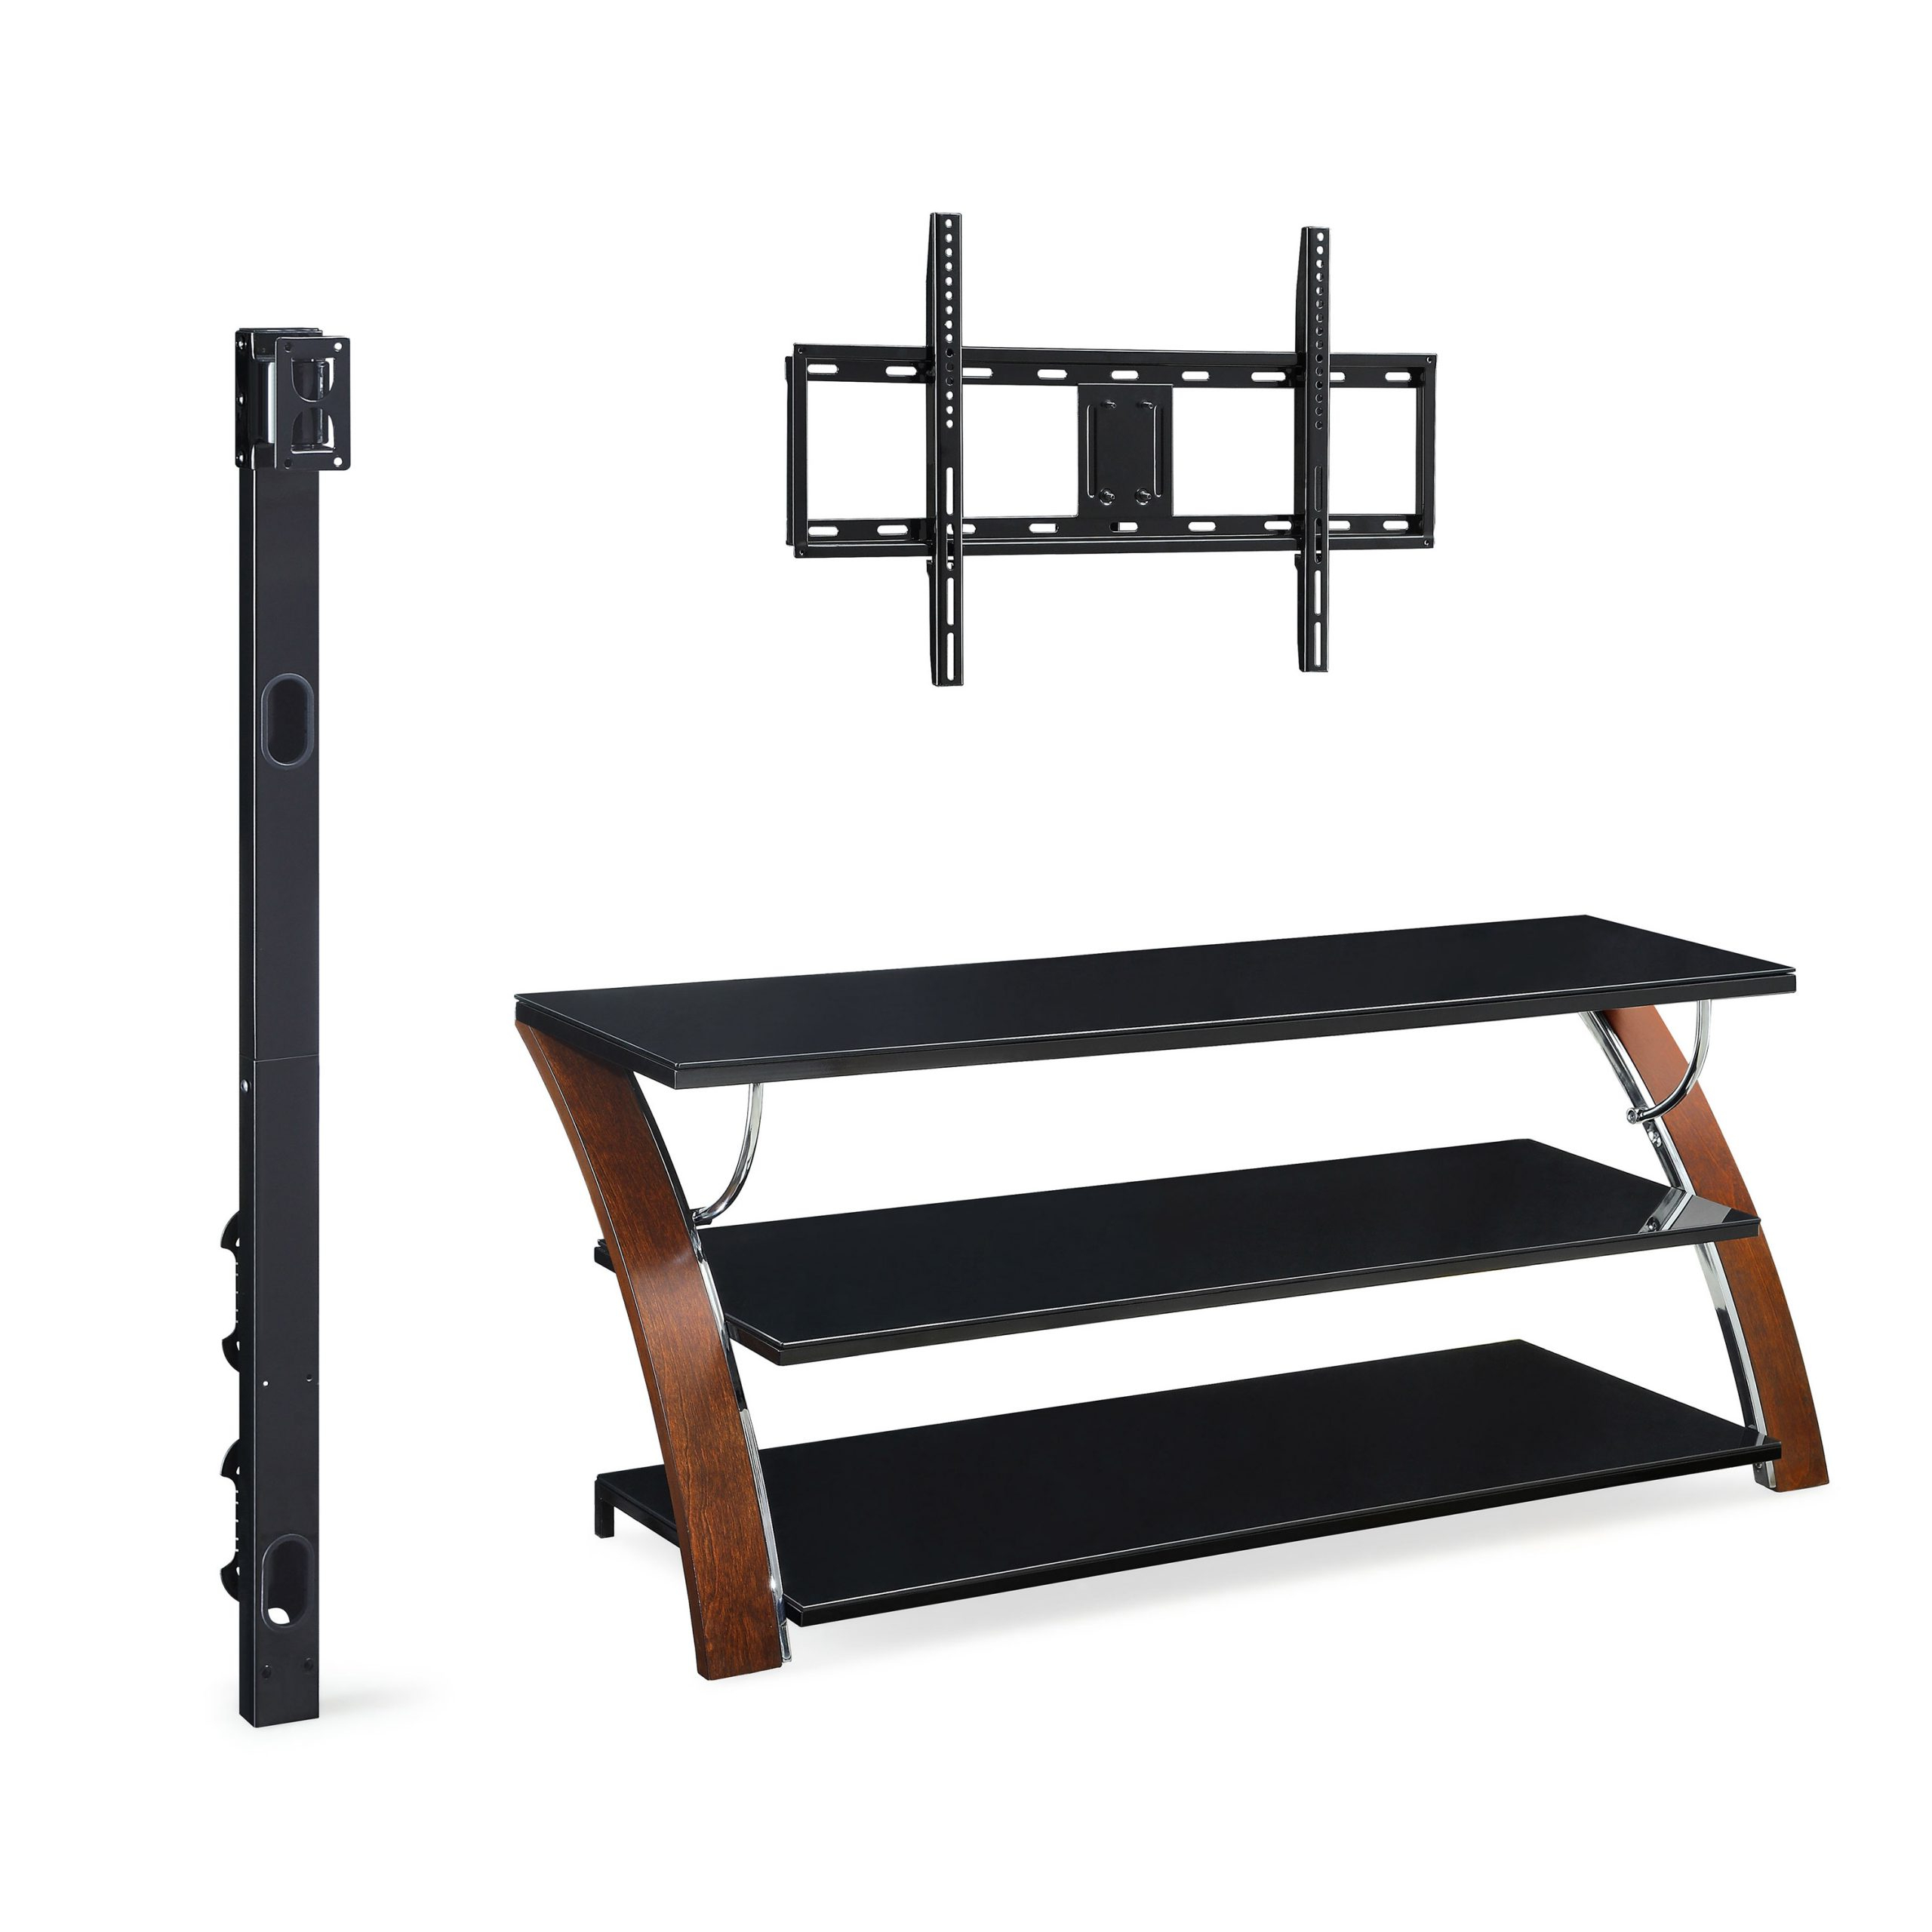 Whalen Throughout Whalen Payton 3 In 1 Flat Panel Tv Stands With Multiple Finishes (View 16 of 20)